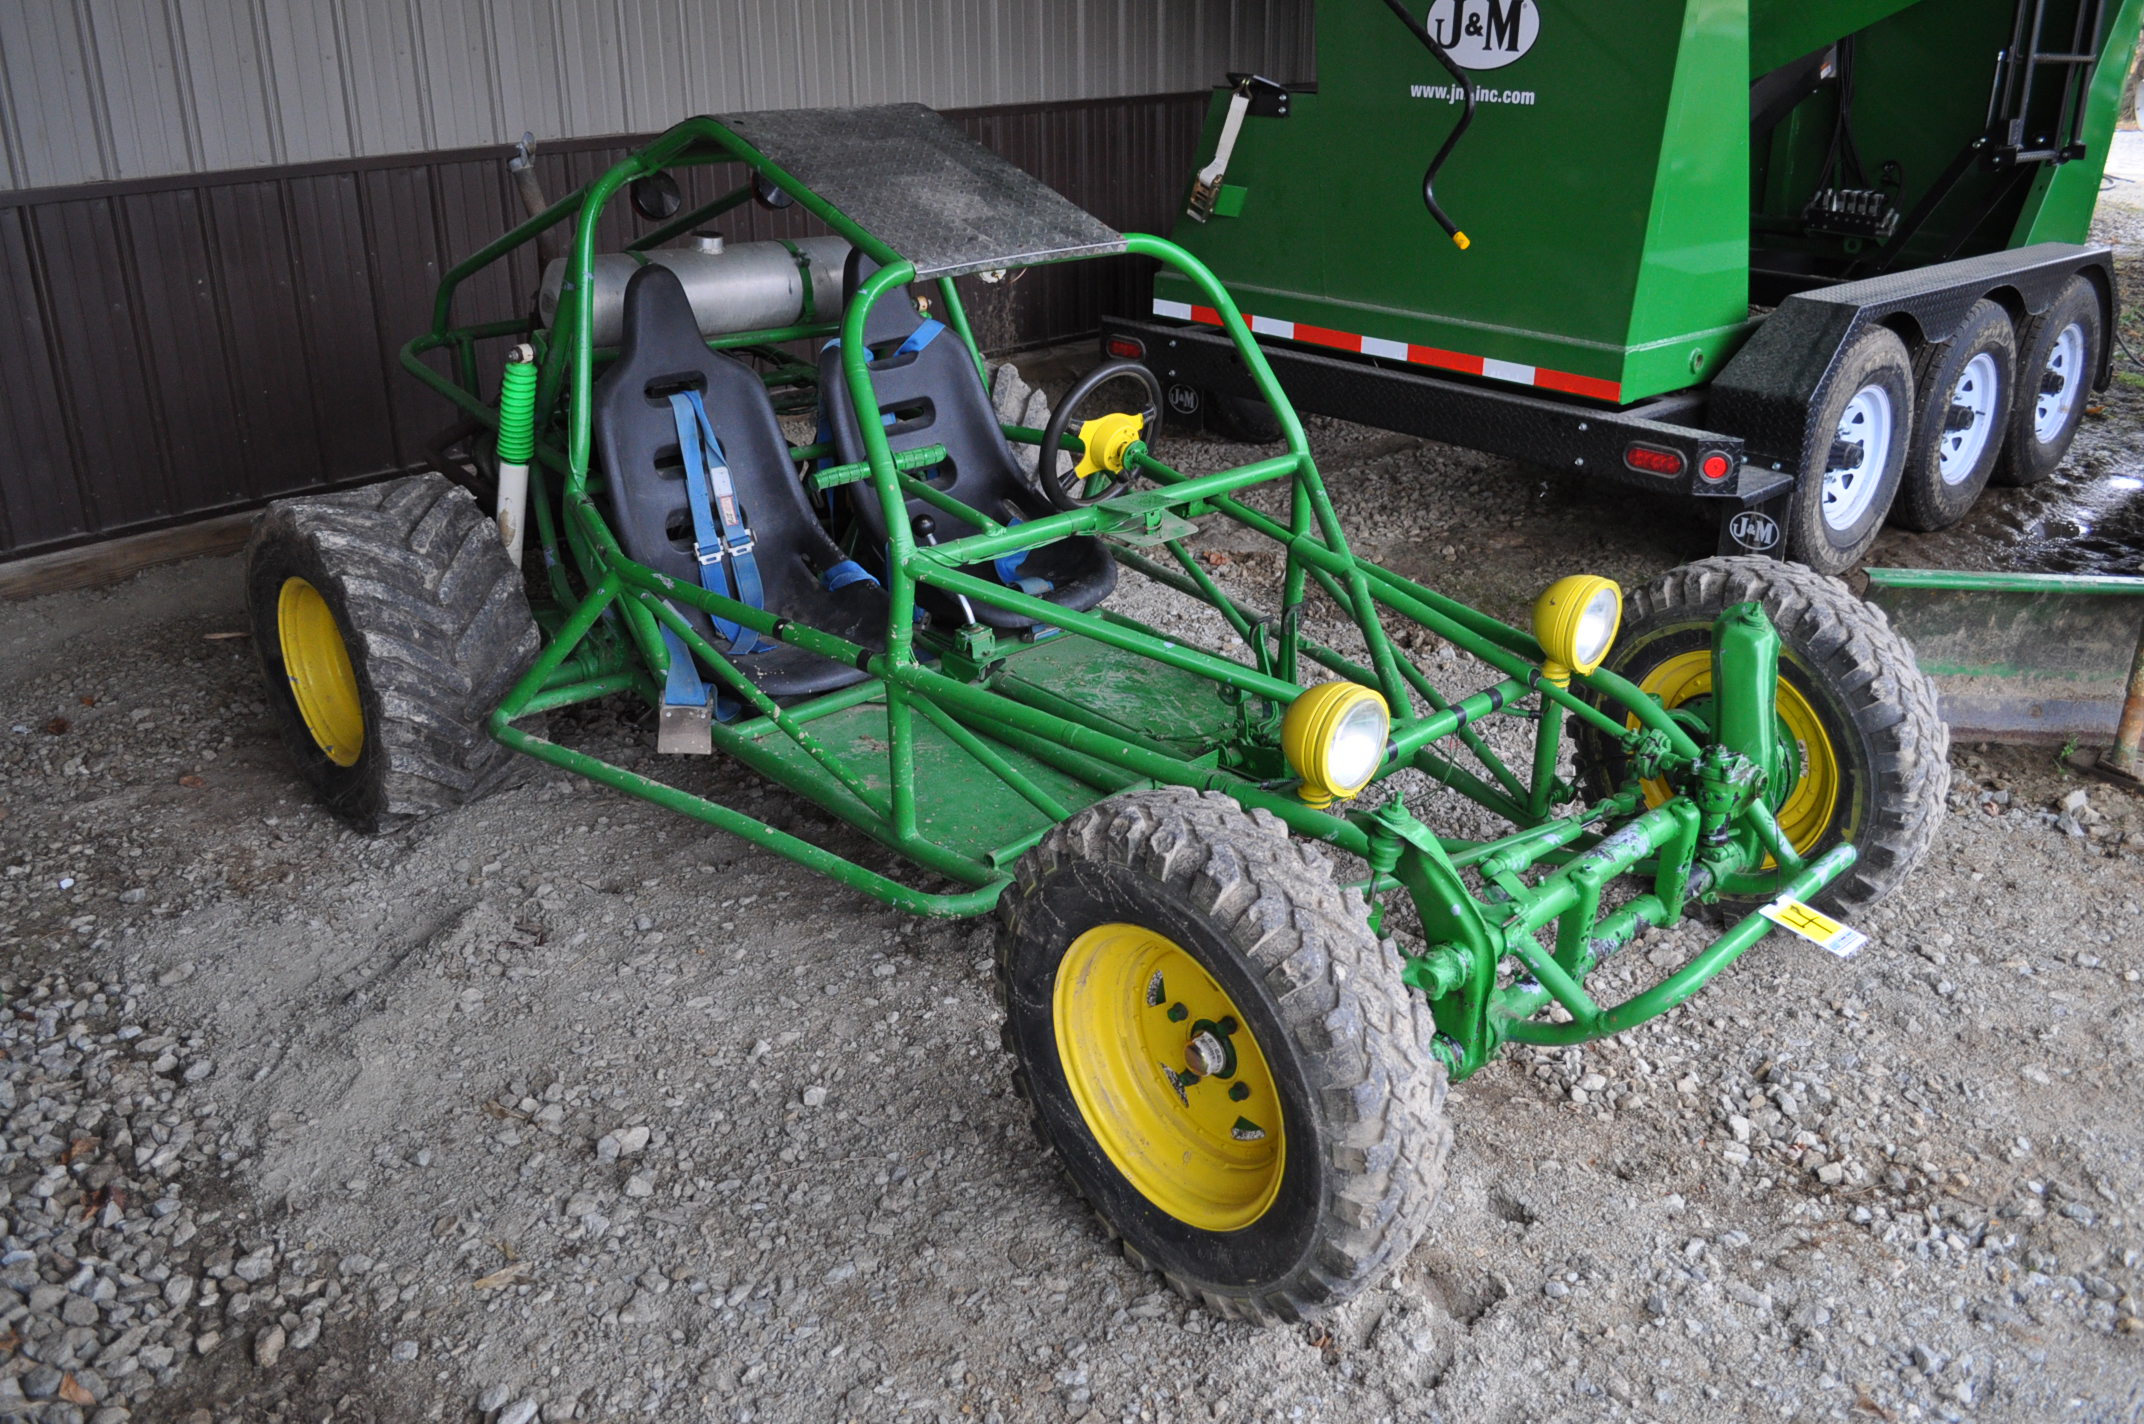 Dune buggy, VW air-cooled gas engine, 31 x 15.5-15 rear, 6.70-15LT front - Image 2 of 10